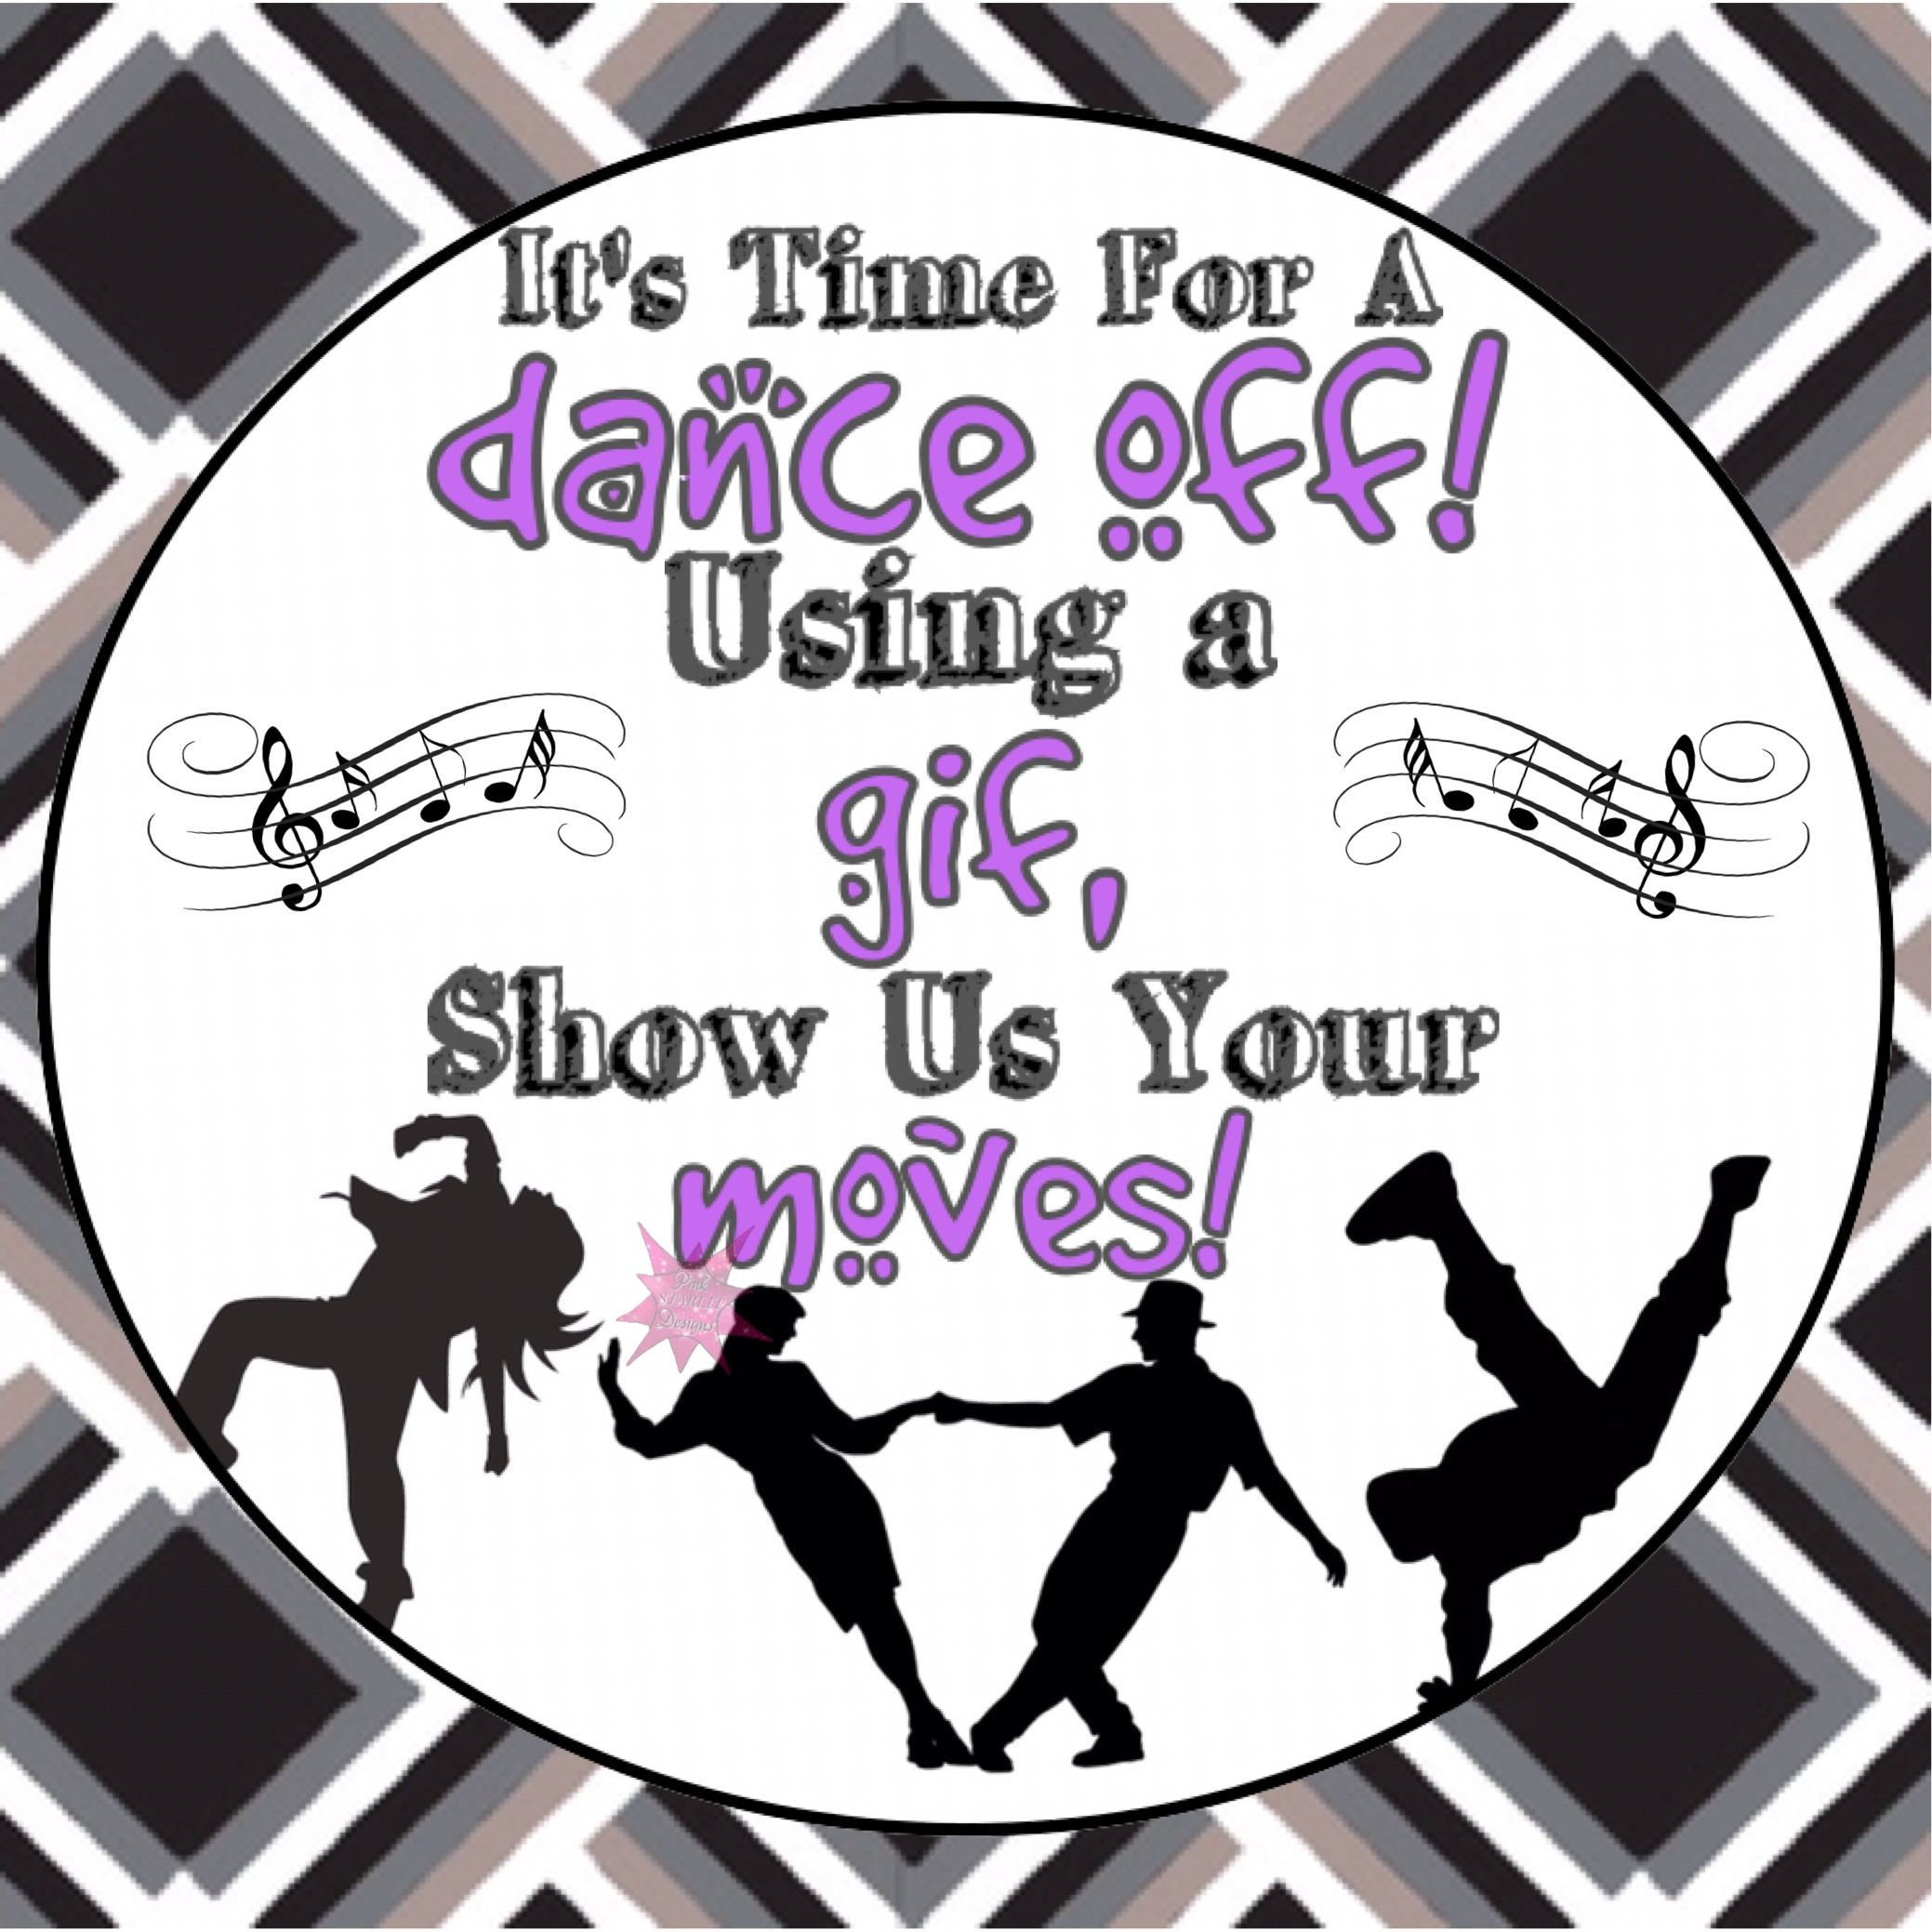 Vip dance party clipart svg library stock Gif dance off interactive graphic for Facebook VIP group or ... svg library stock